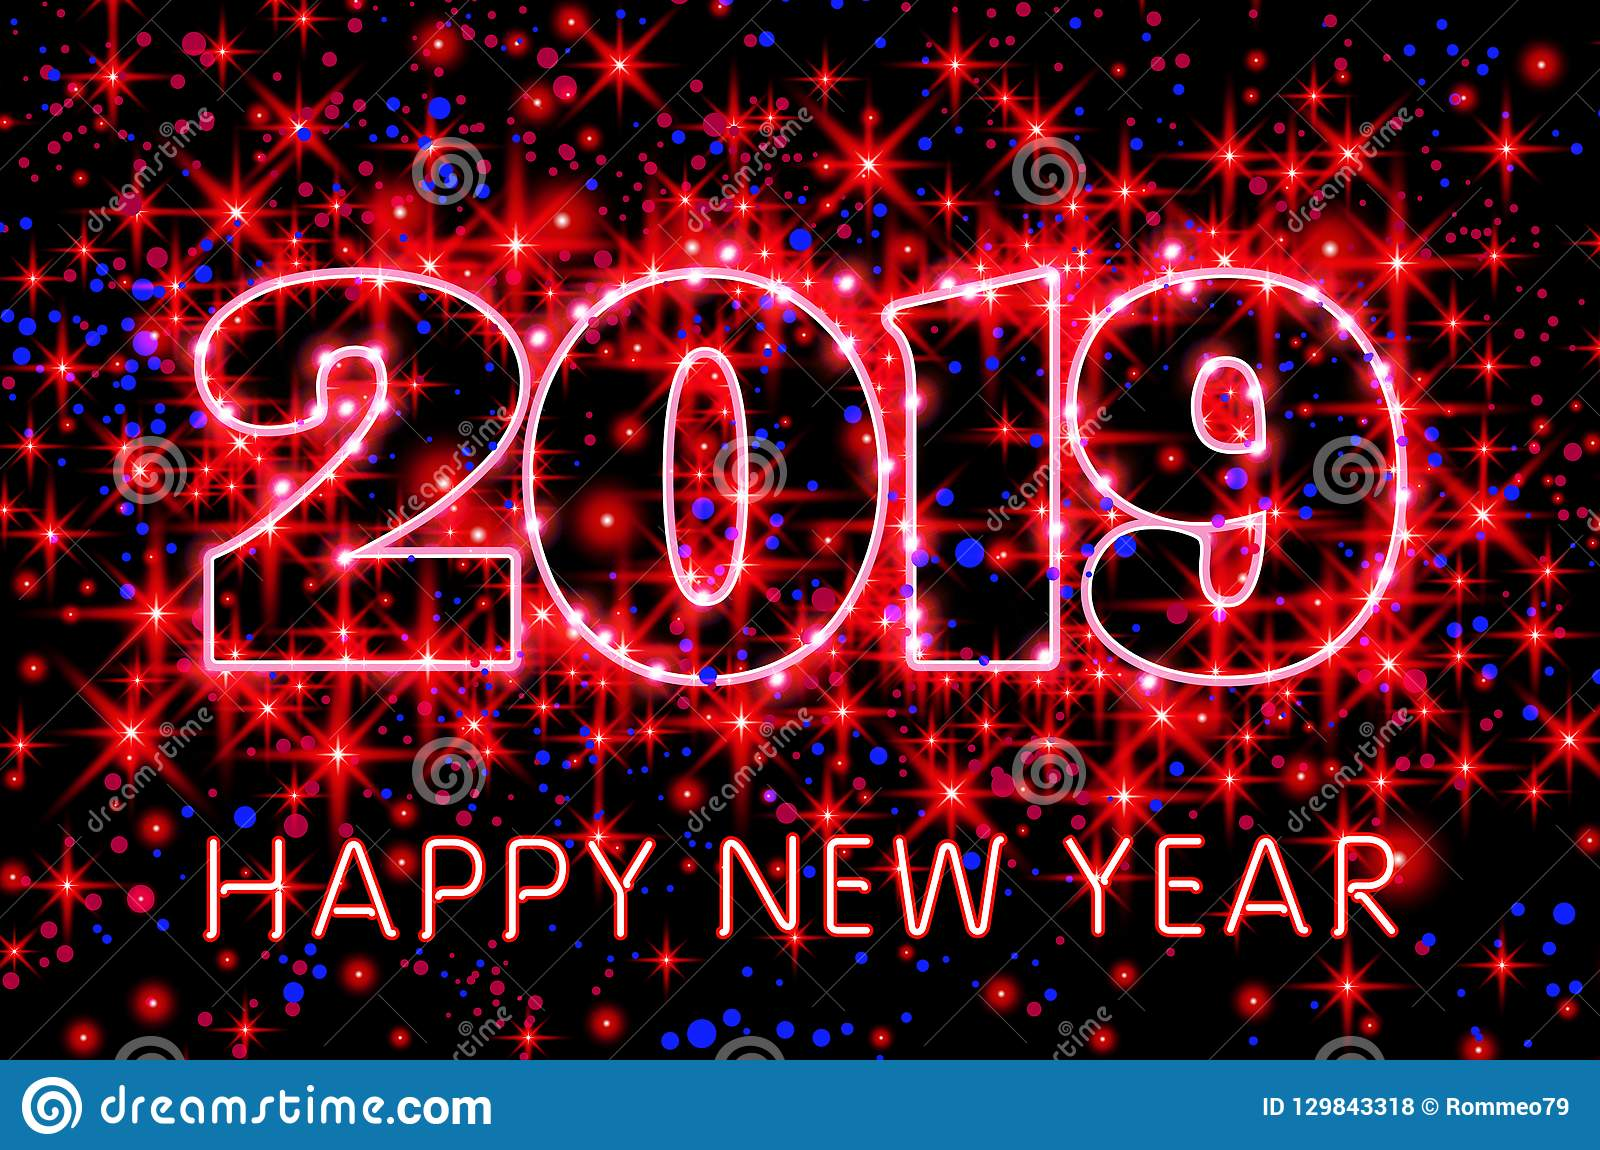 vector neon red typography happy new year 2019 in starry sky purple background illustration